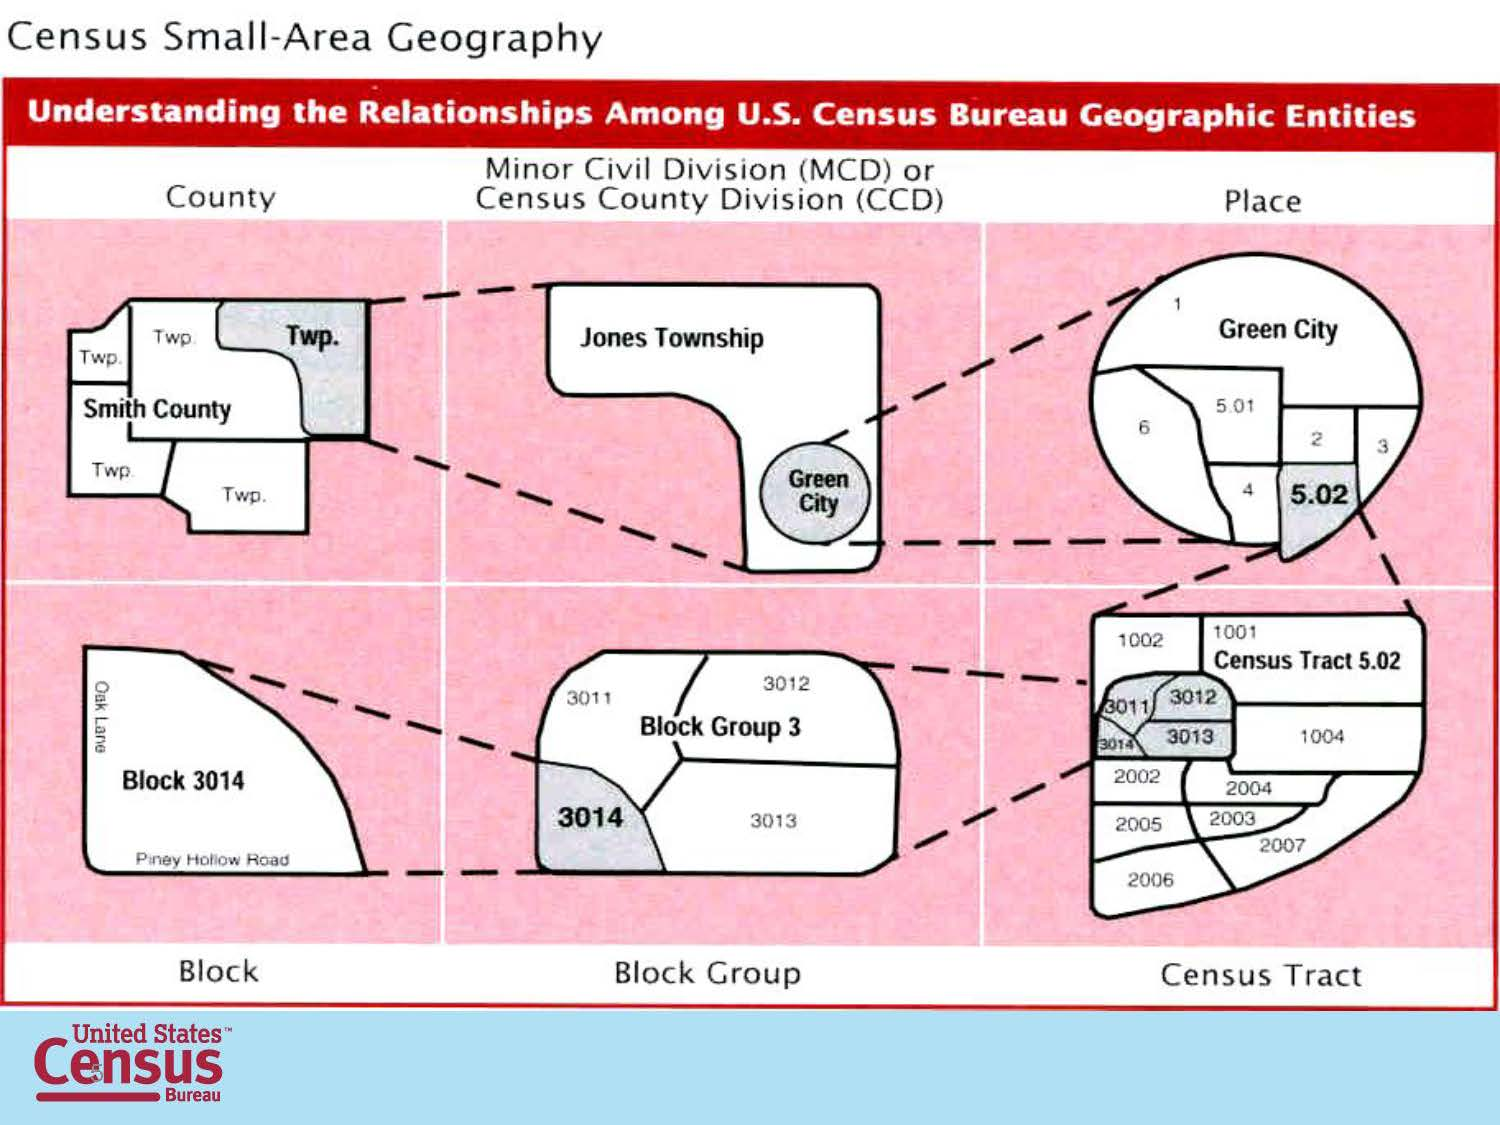 Census Small-Area Geography Infographic